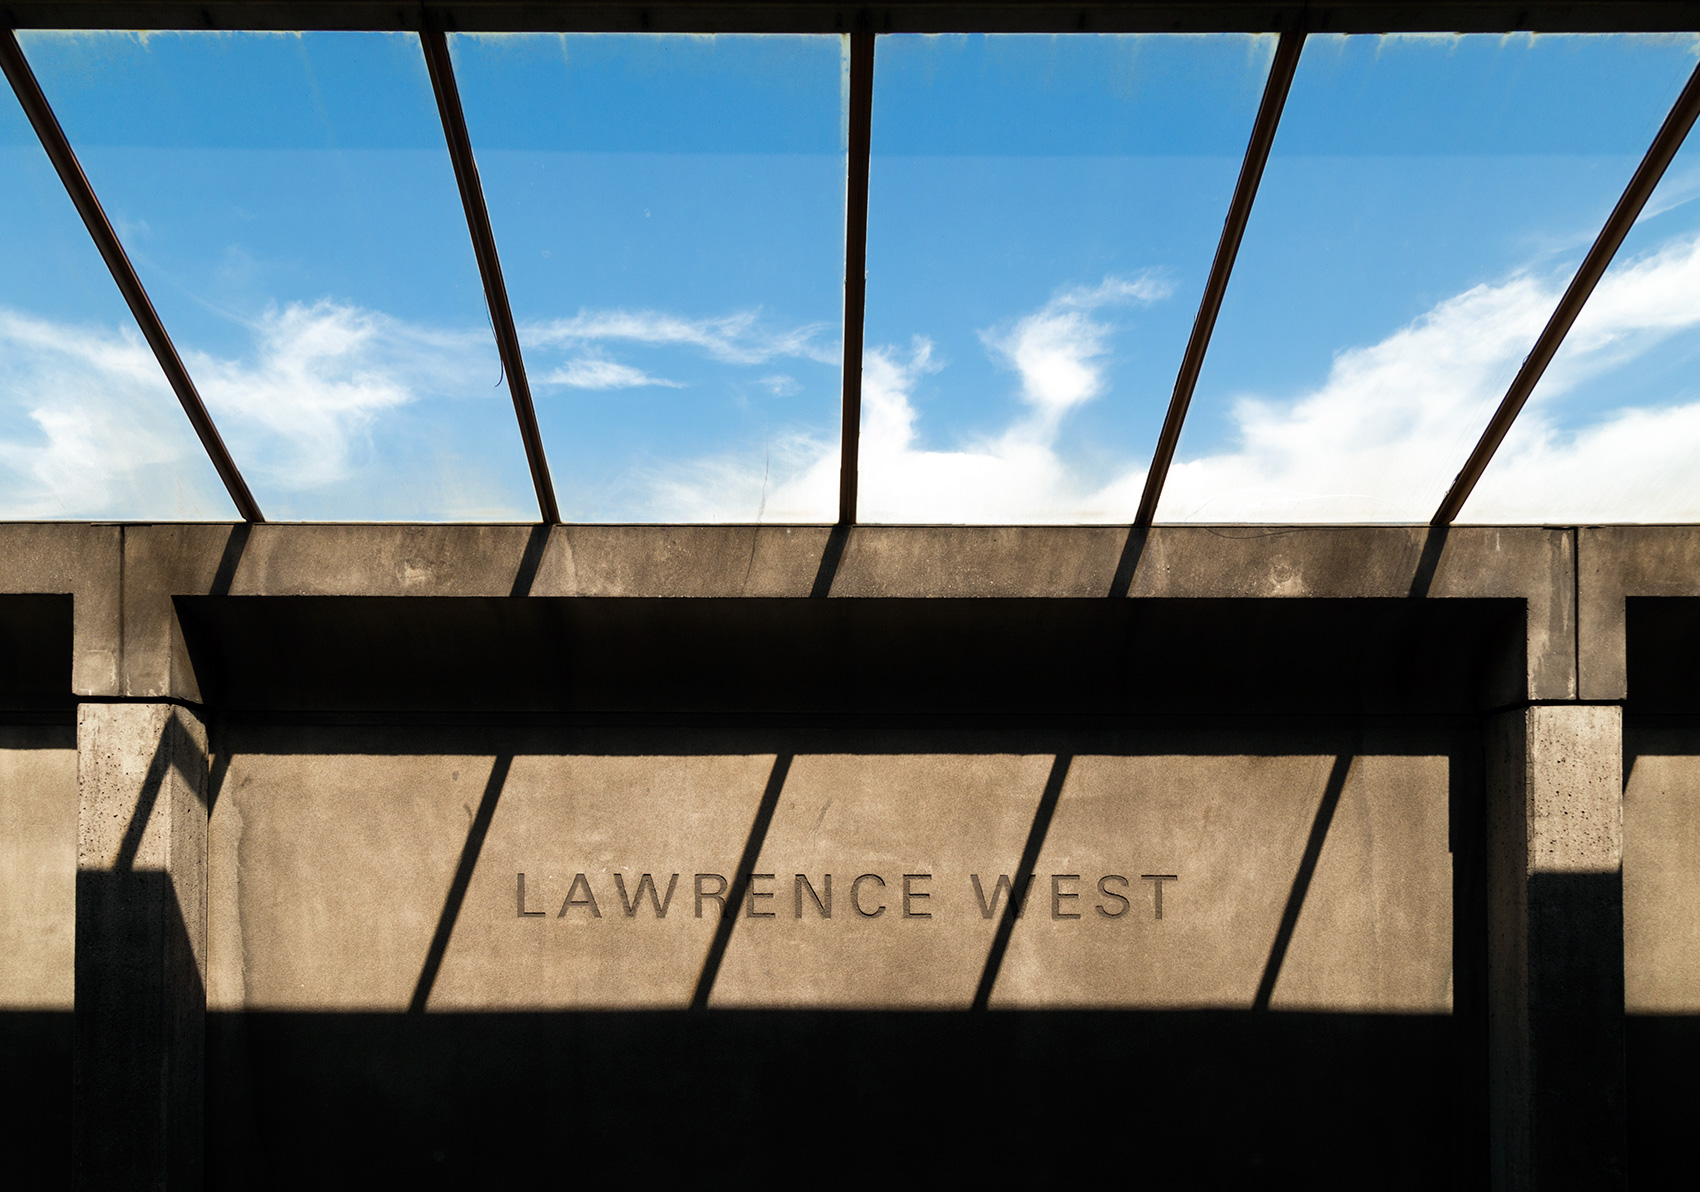 20150718. Blue sky bars and concrete shadows.  Lawrence West sub